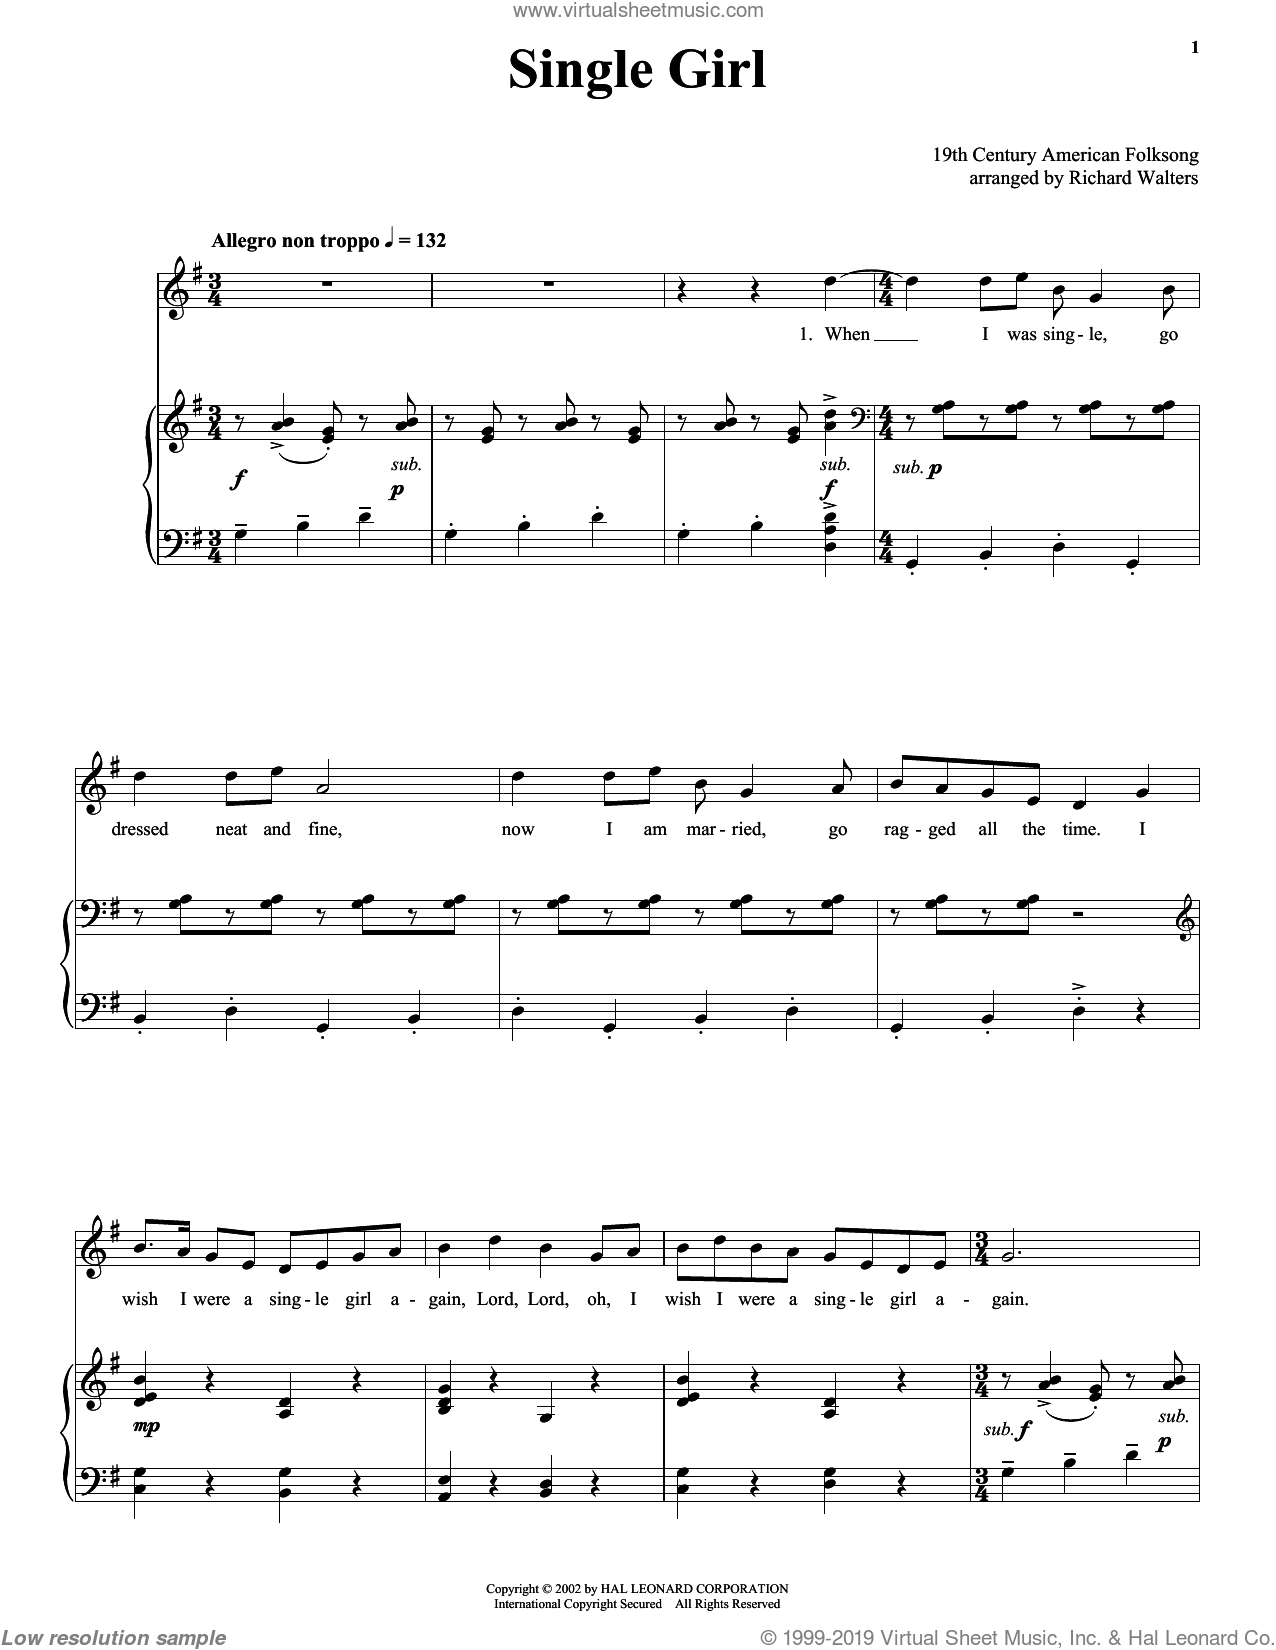 Single Girl sheet music for voice and piano by Anonymous and 19th Century American Folksong, intermediate skill level